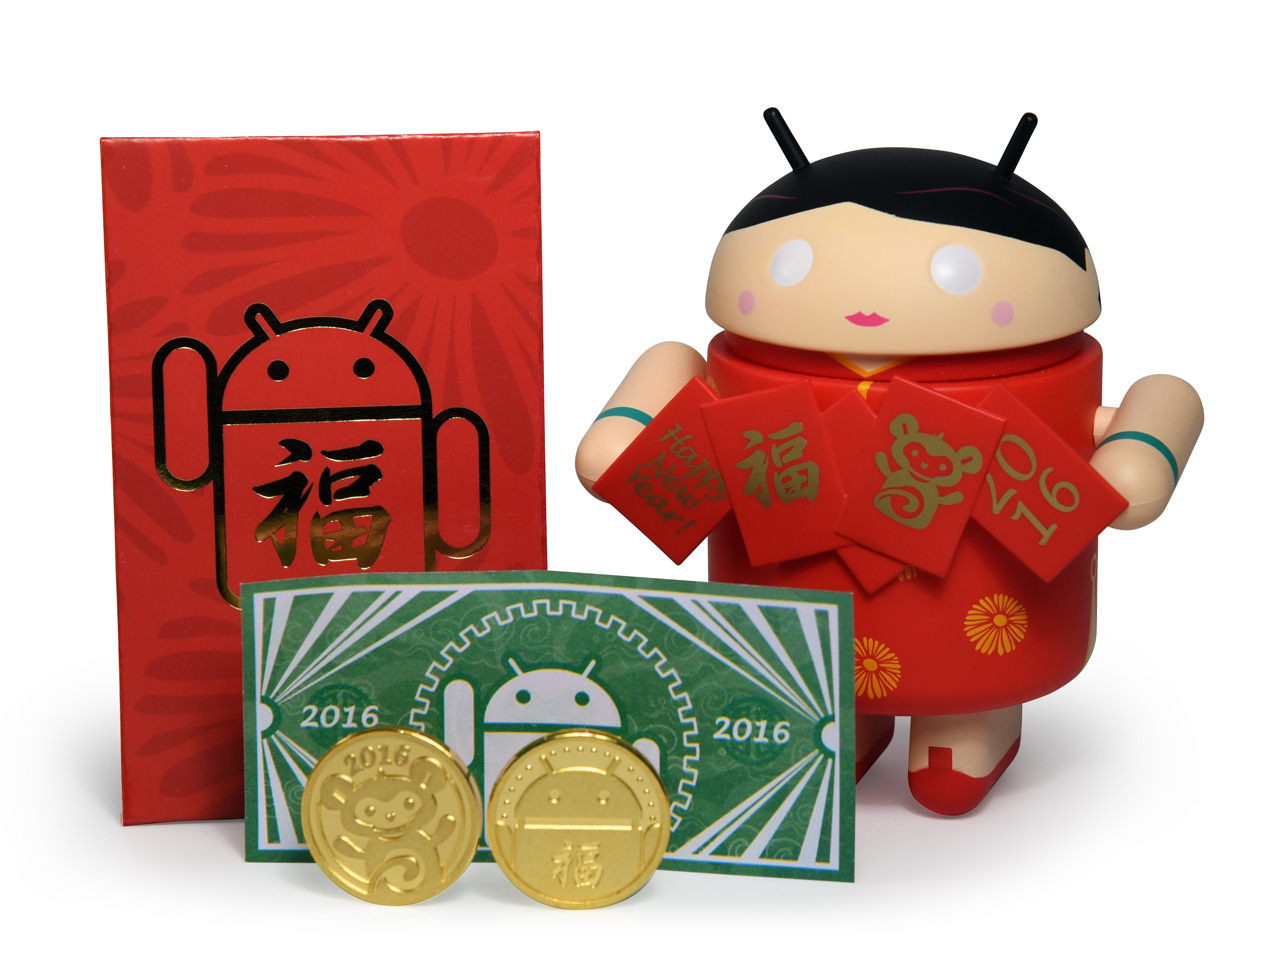 android_cny2016 redpocket winner 1280 - 2016 Chinese New Year